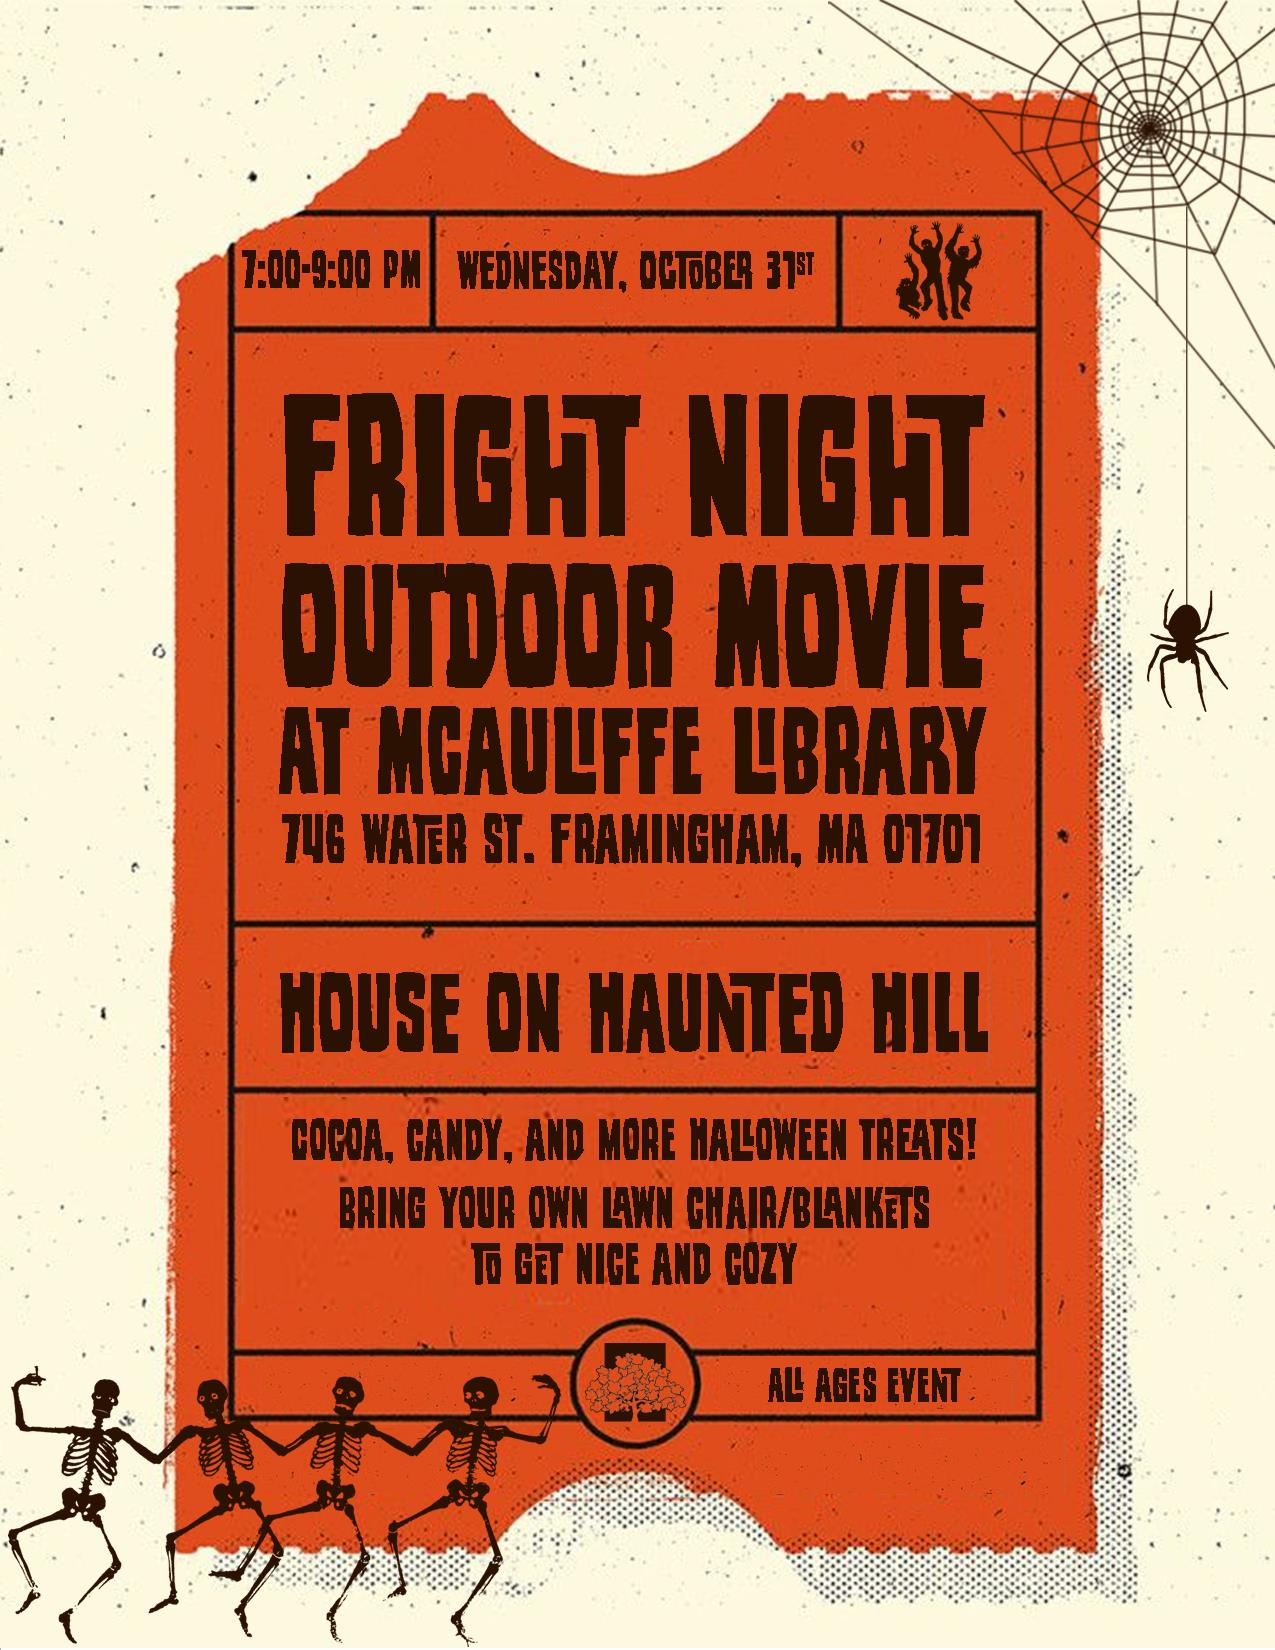 Fright Night Outdoor Movie: House on Haunted Hill thumbnail Photo